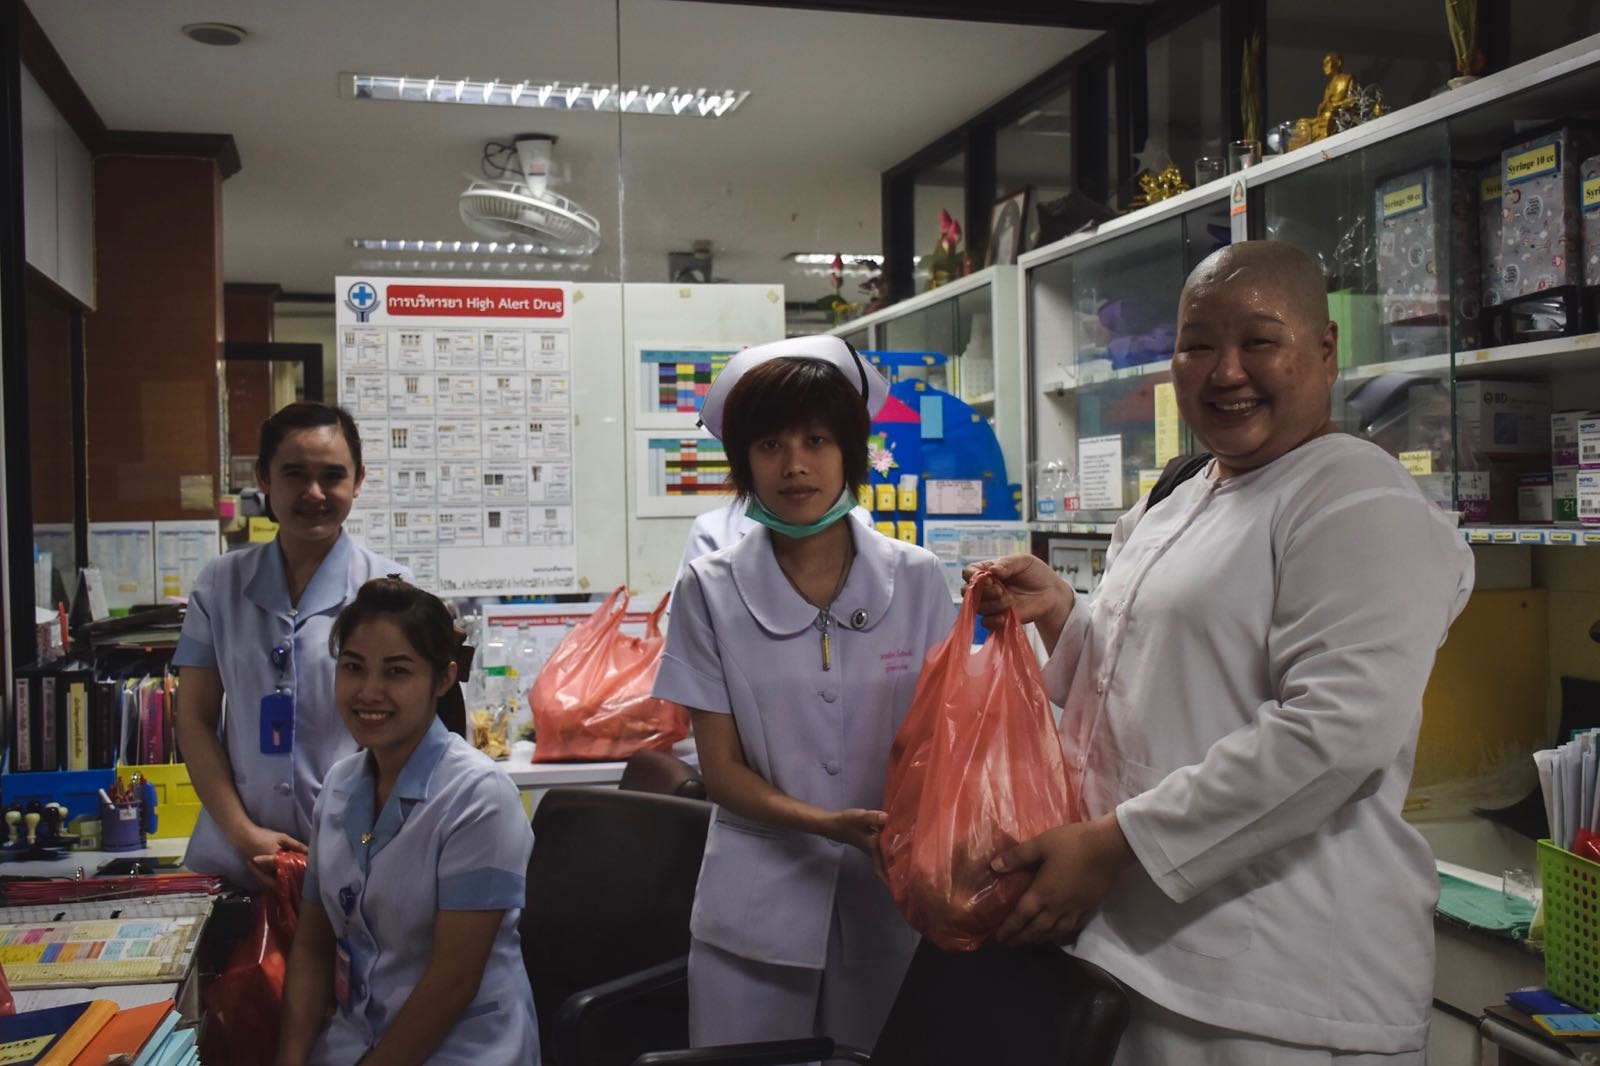 Passing donations and useful daily items to hospital staff